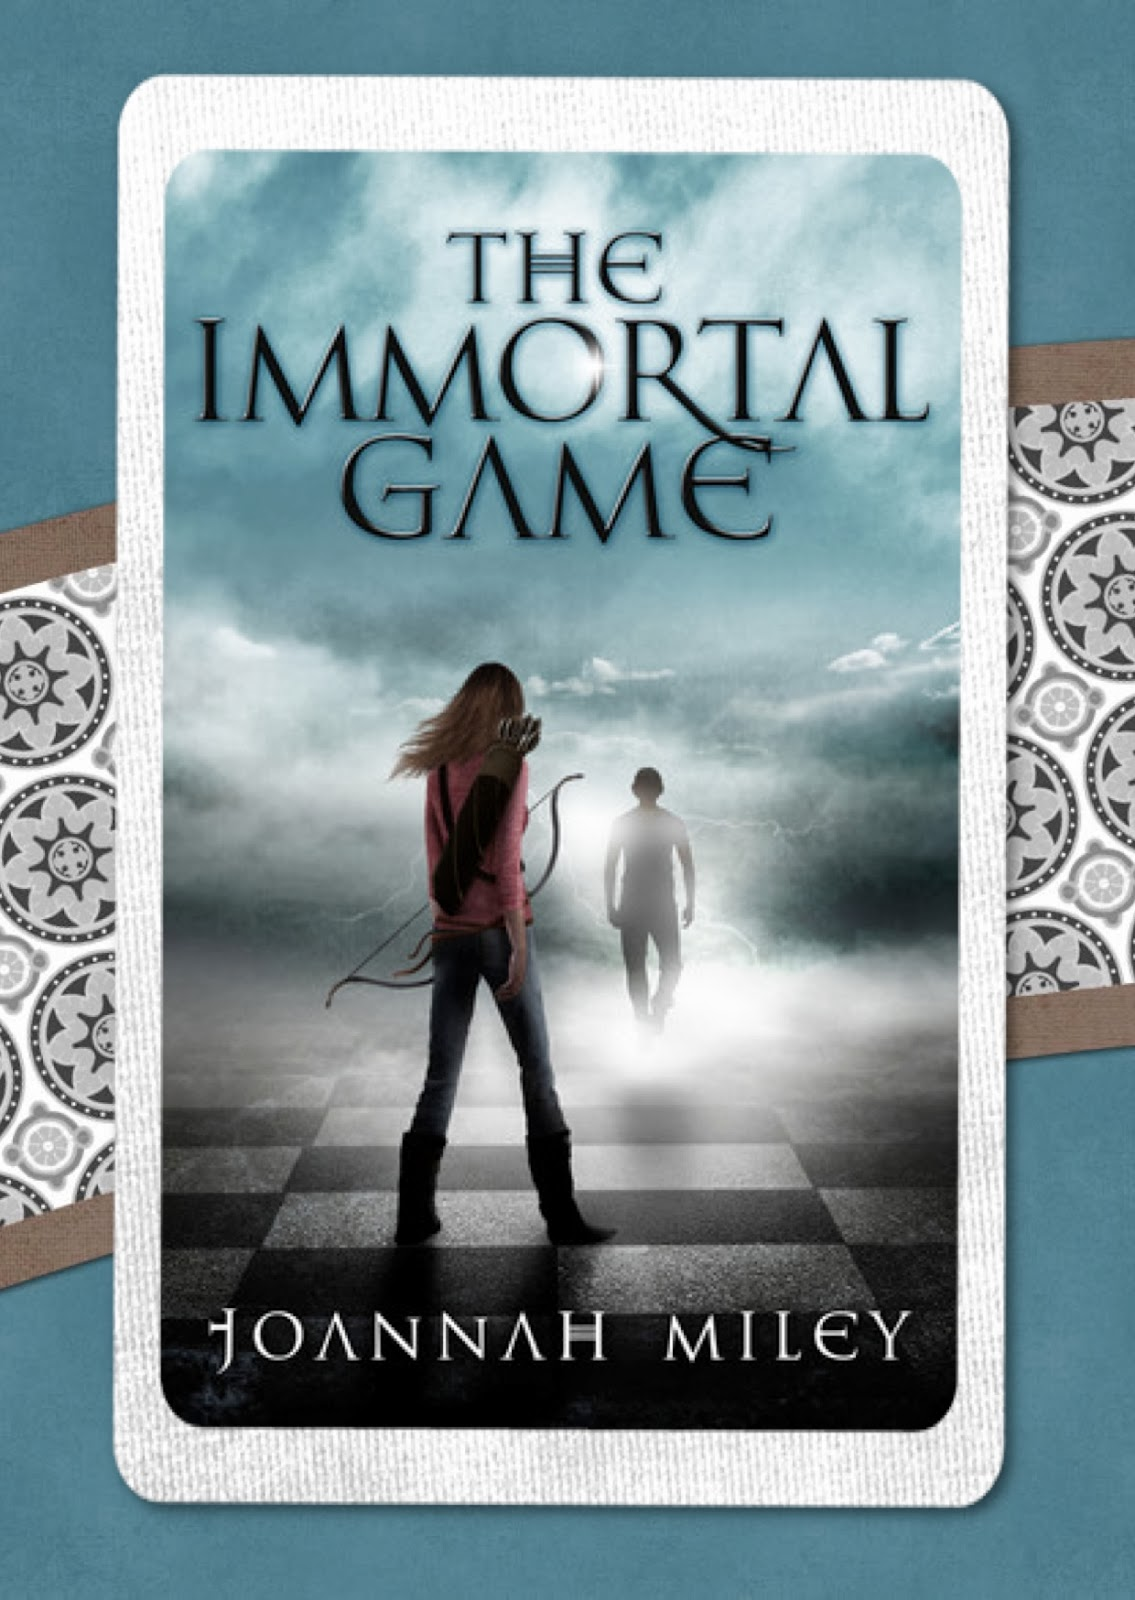 Book Review: The Immortal Game by Joannah Miley